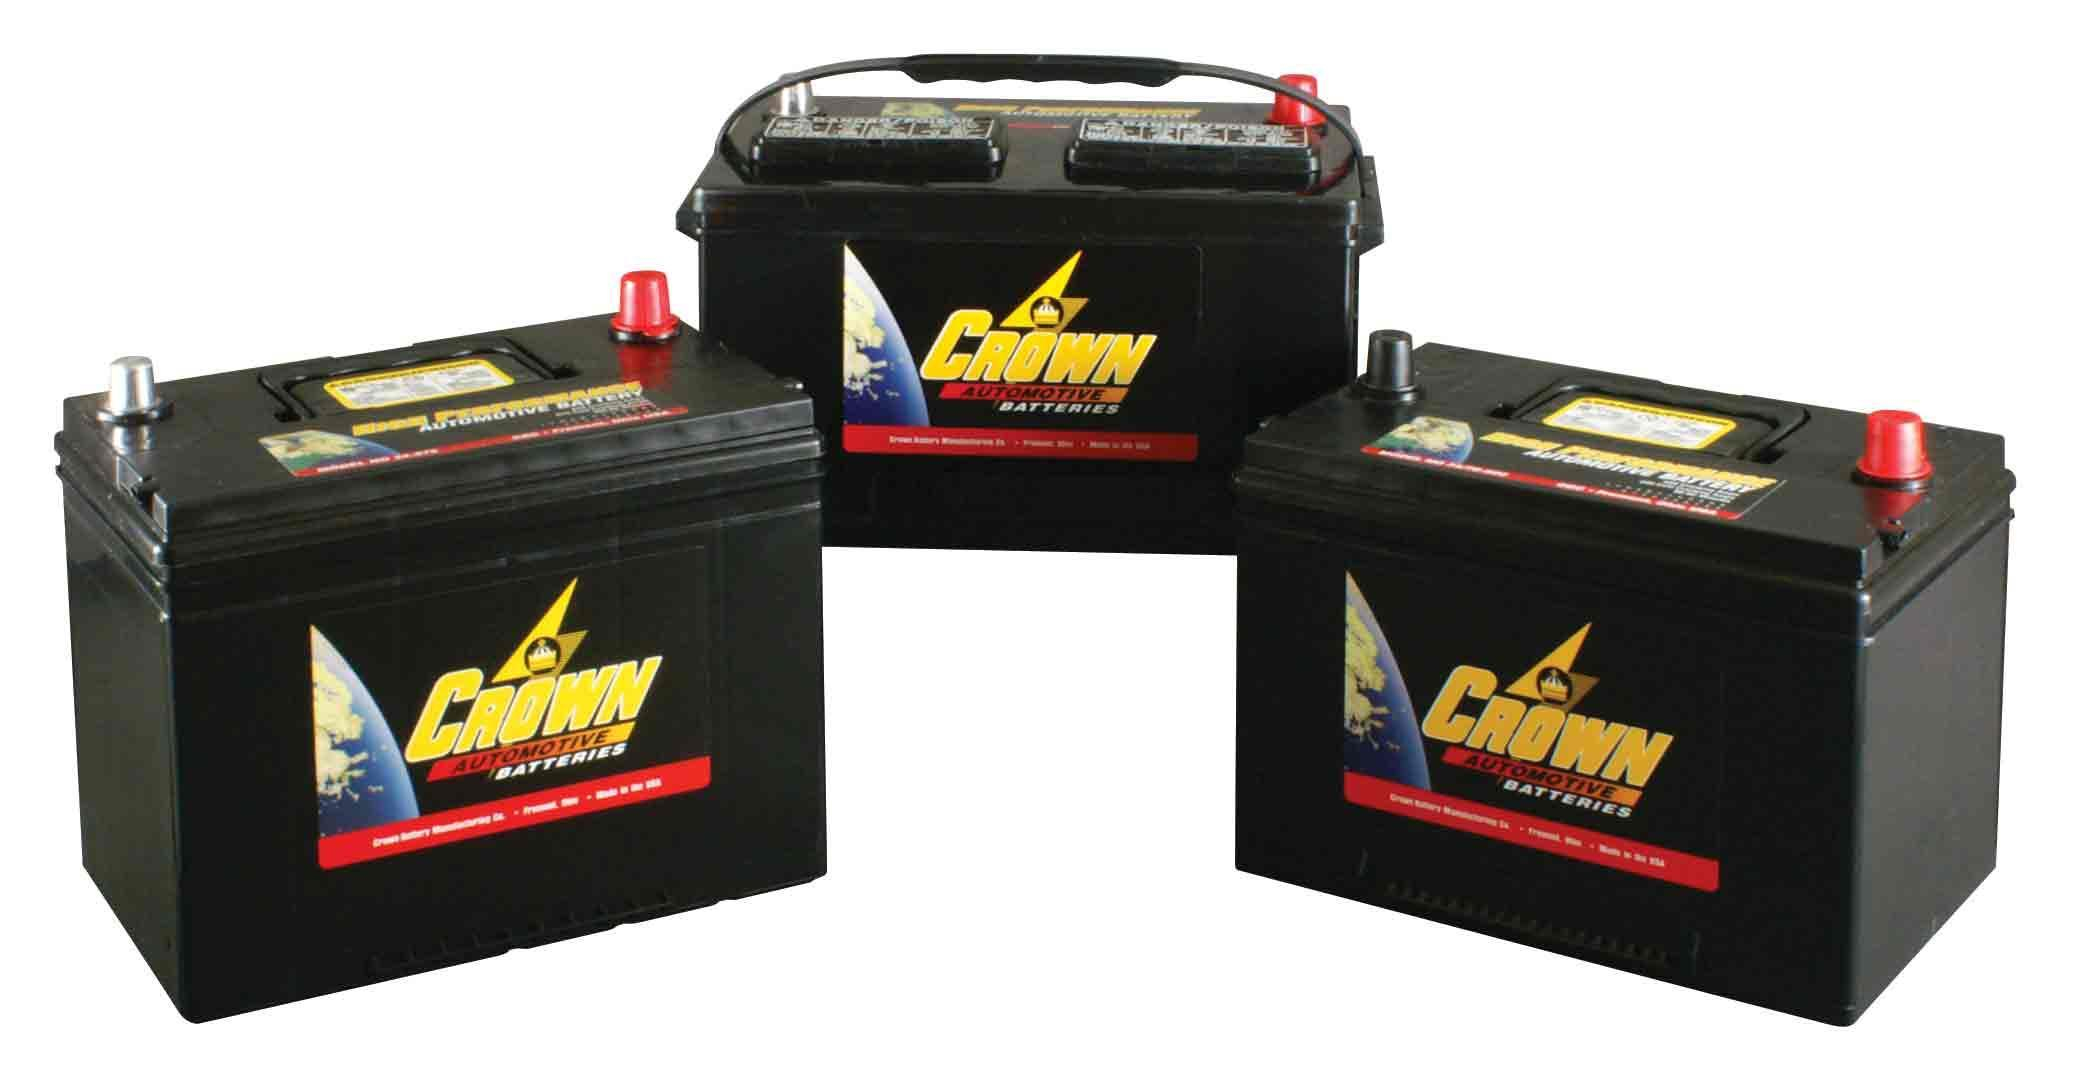 We Only Sell America's No. 1 Car Battery We sell the best because your car deserves the best. For over 60 years, Interstate Batteries has been the leader in car battery reliability, performance, and innovation.